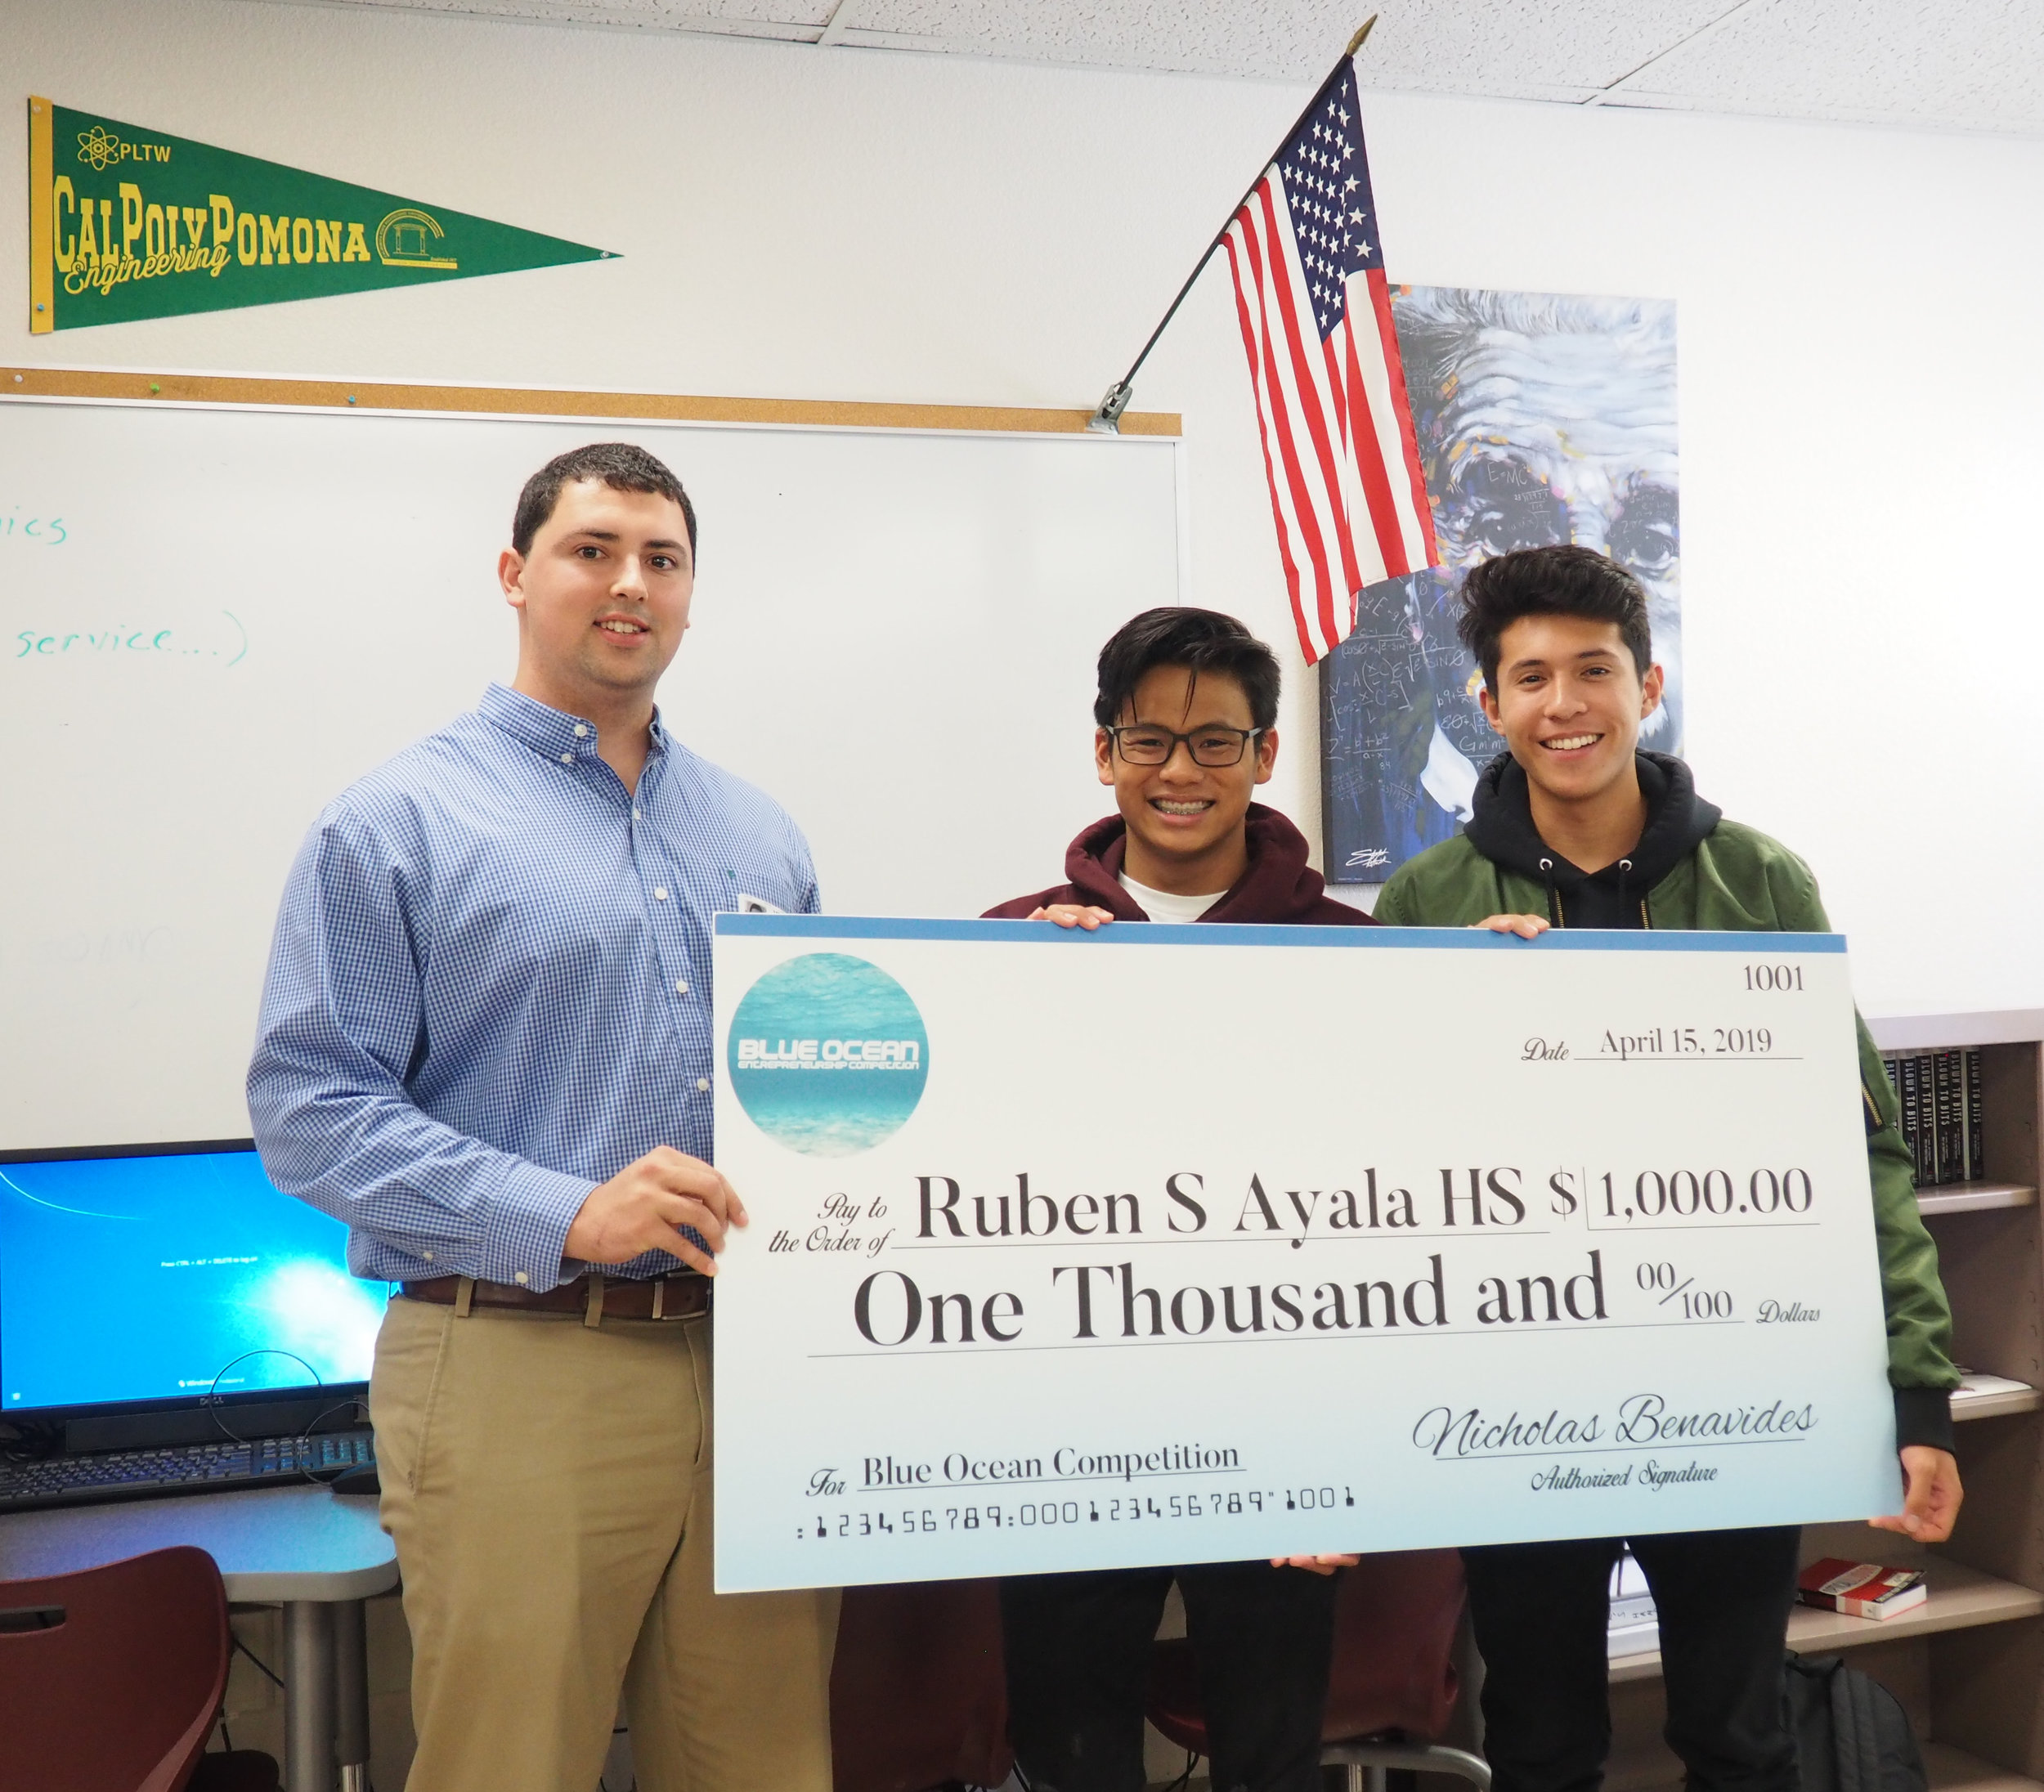 Ruben S. Ayala High School - Click the image to see the photos from Competition Founder Nicholas Benavides visit to Ruben S. Ayala High School in Chino Hills, CA and the case study on how the competition was integrated into the classroom.